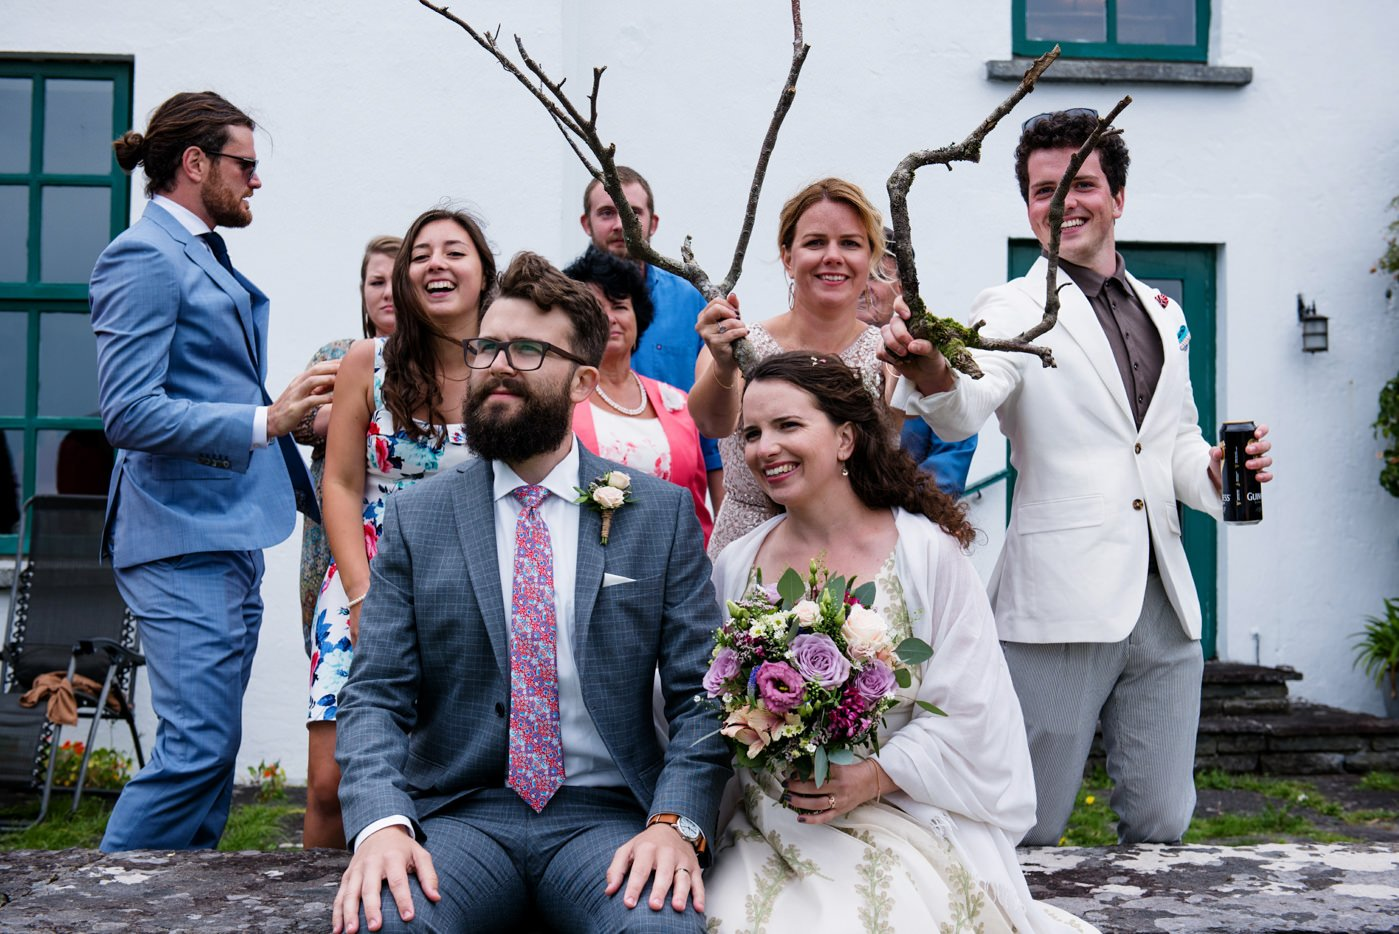 Quirky outdoor wedding photography Co Kerry Ireland